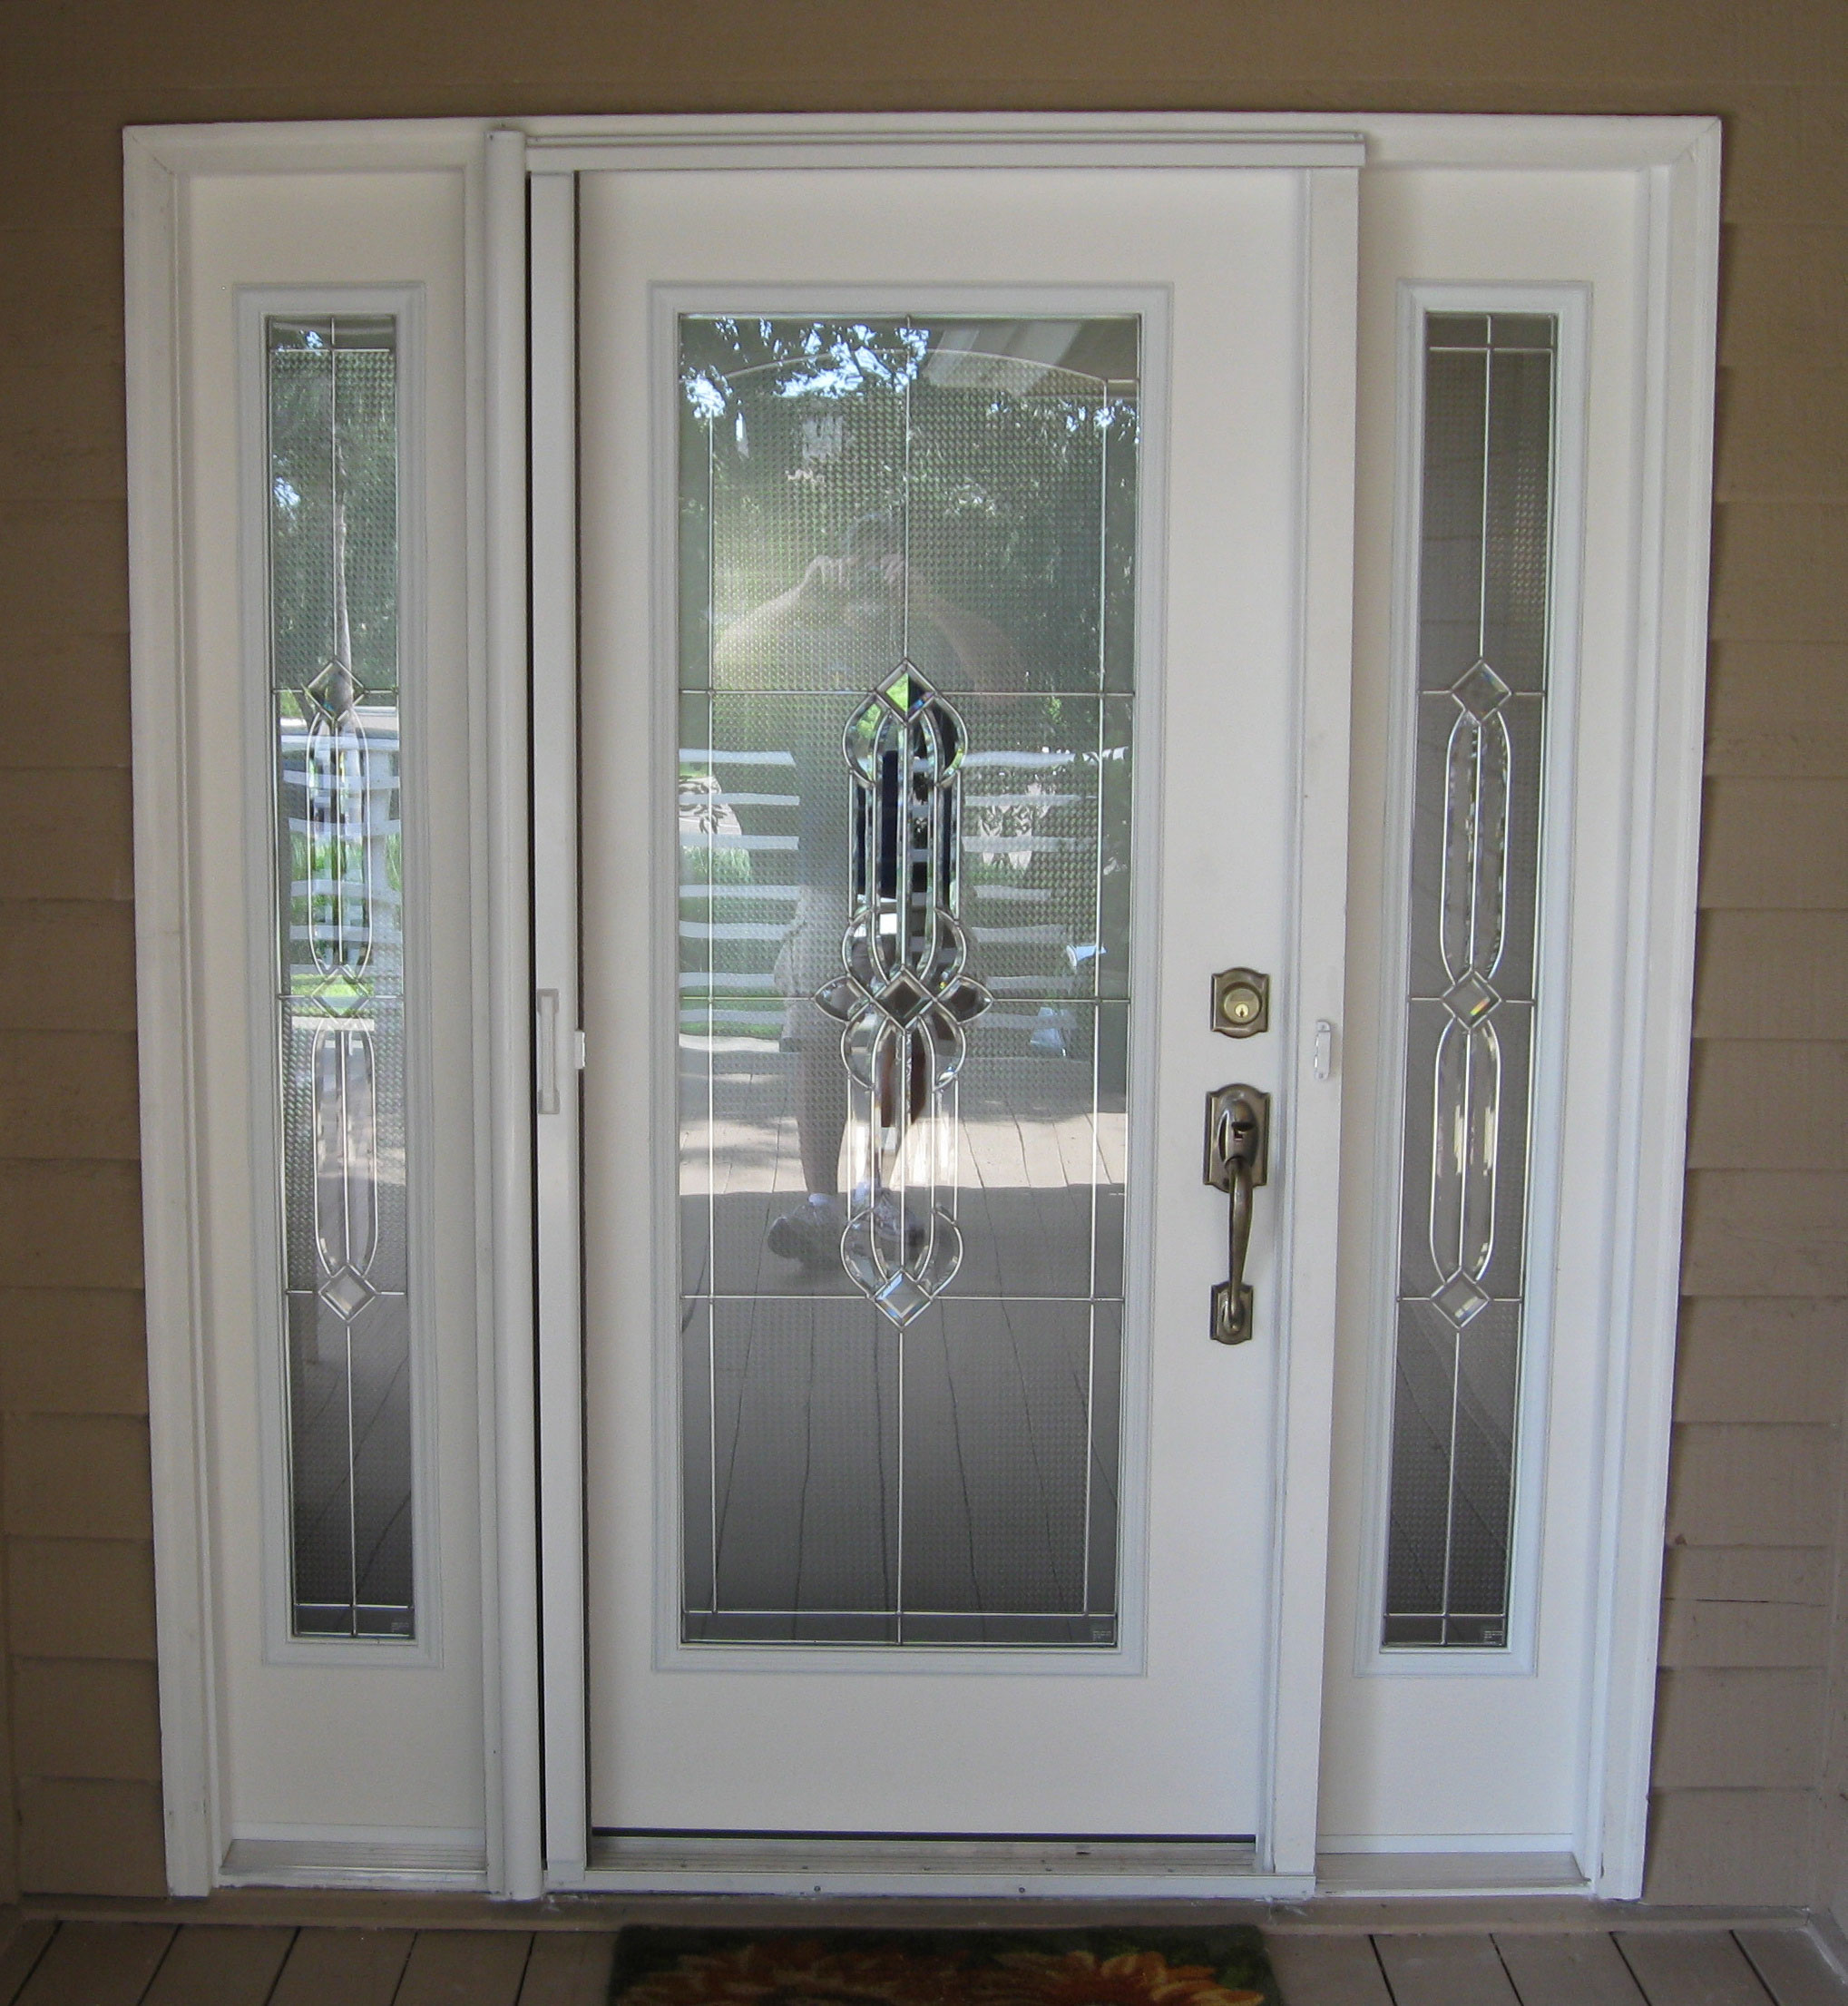 Gulfside glass and mirror tarpon springs florida for Decorative entrance doors